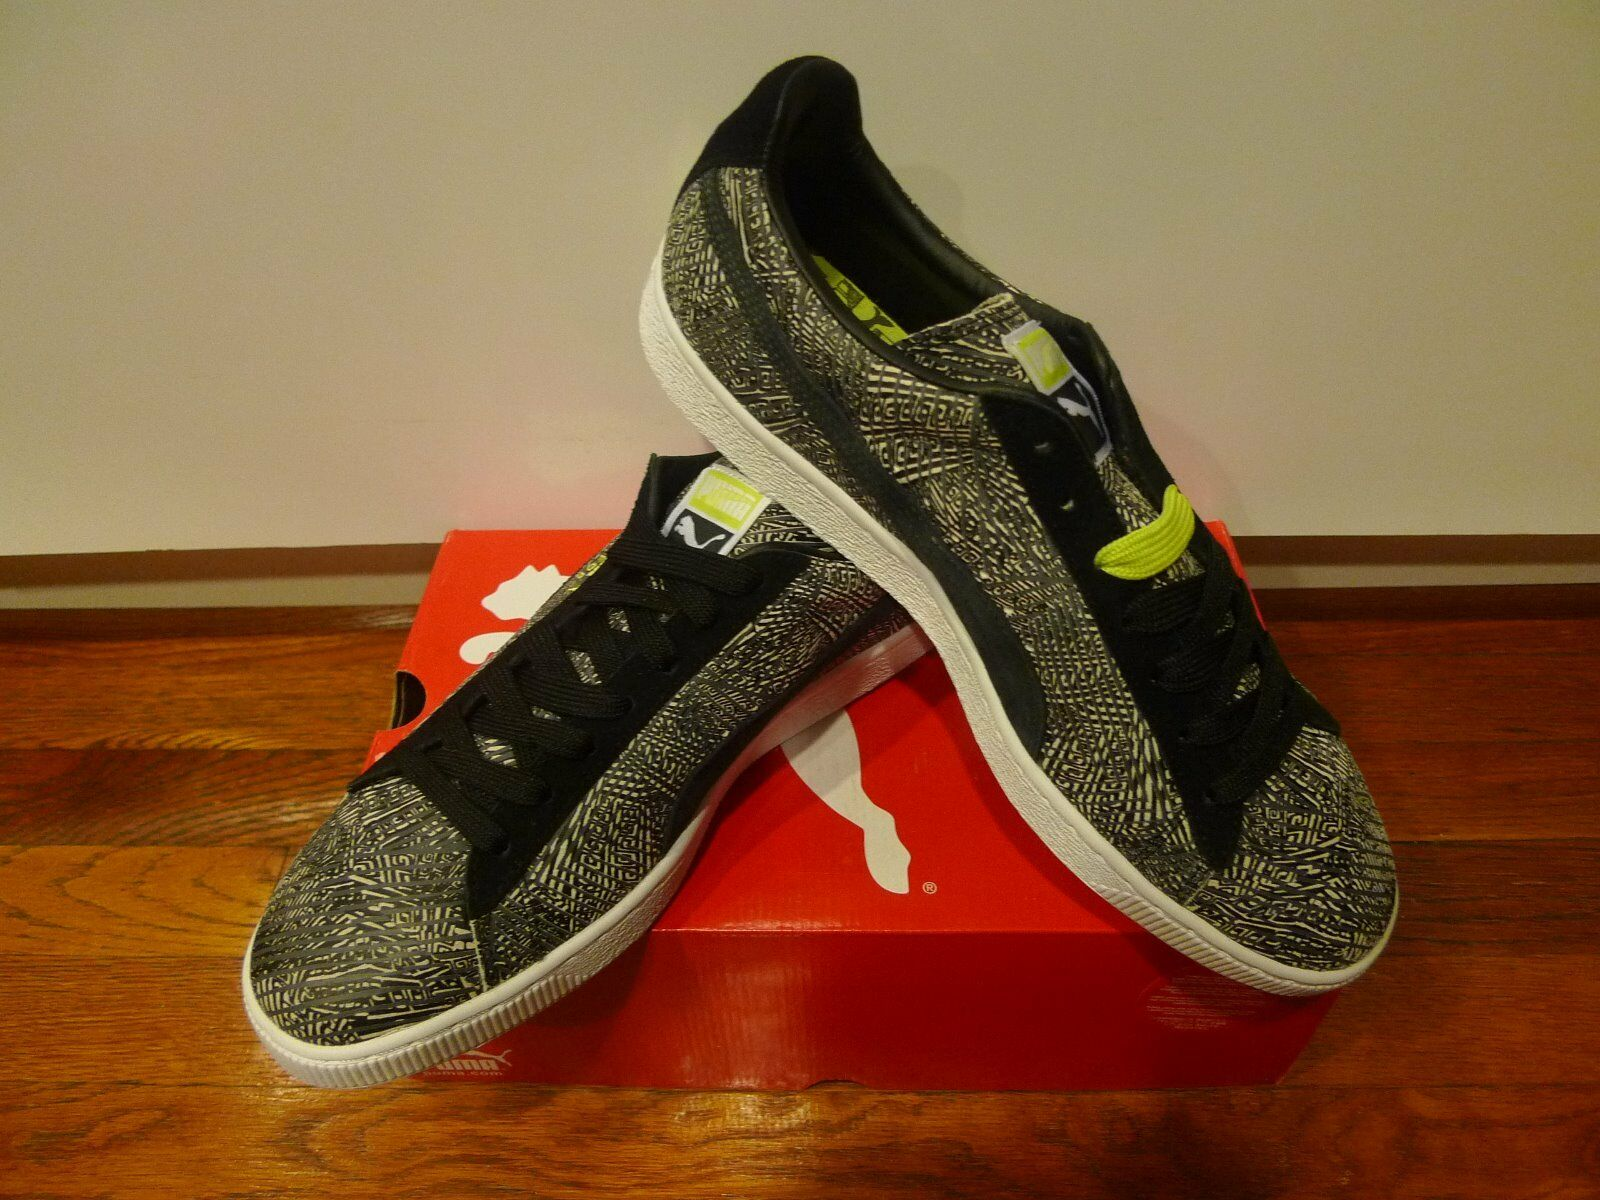 PUMA MEN'S SUEDE MIS-MATCH Price reduction New shoes for men and women, limited time discount